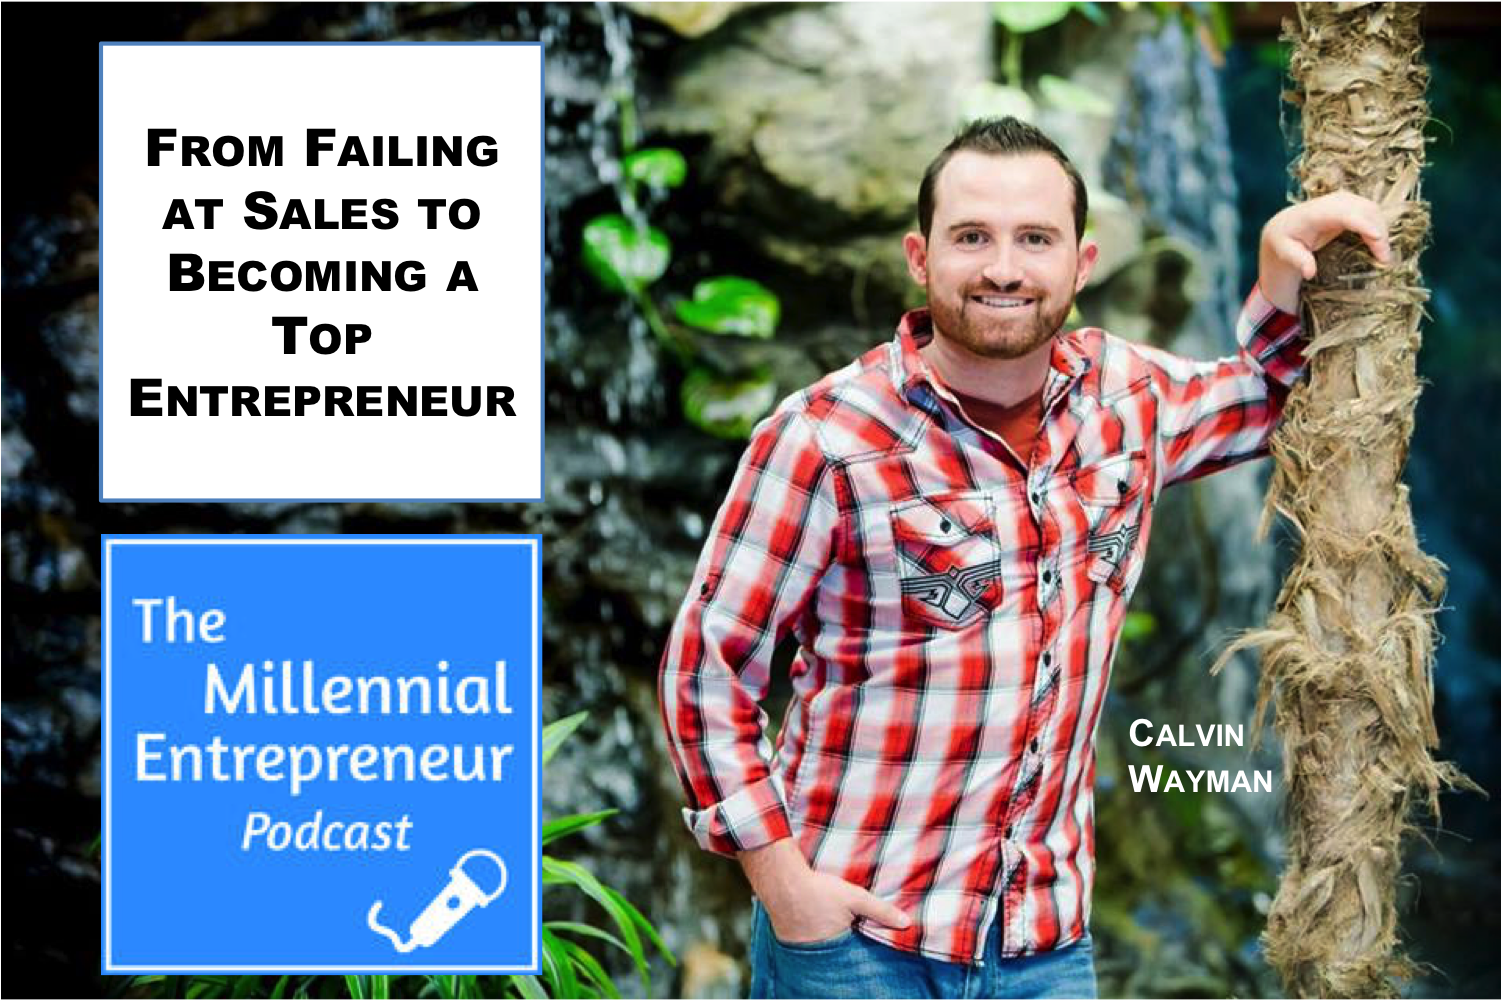 From Failing at Sales to Top Entrepreneur